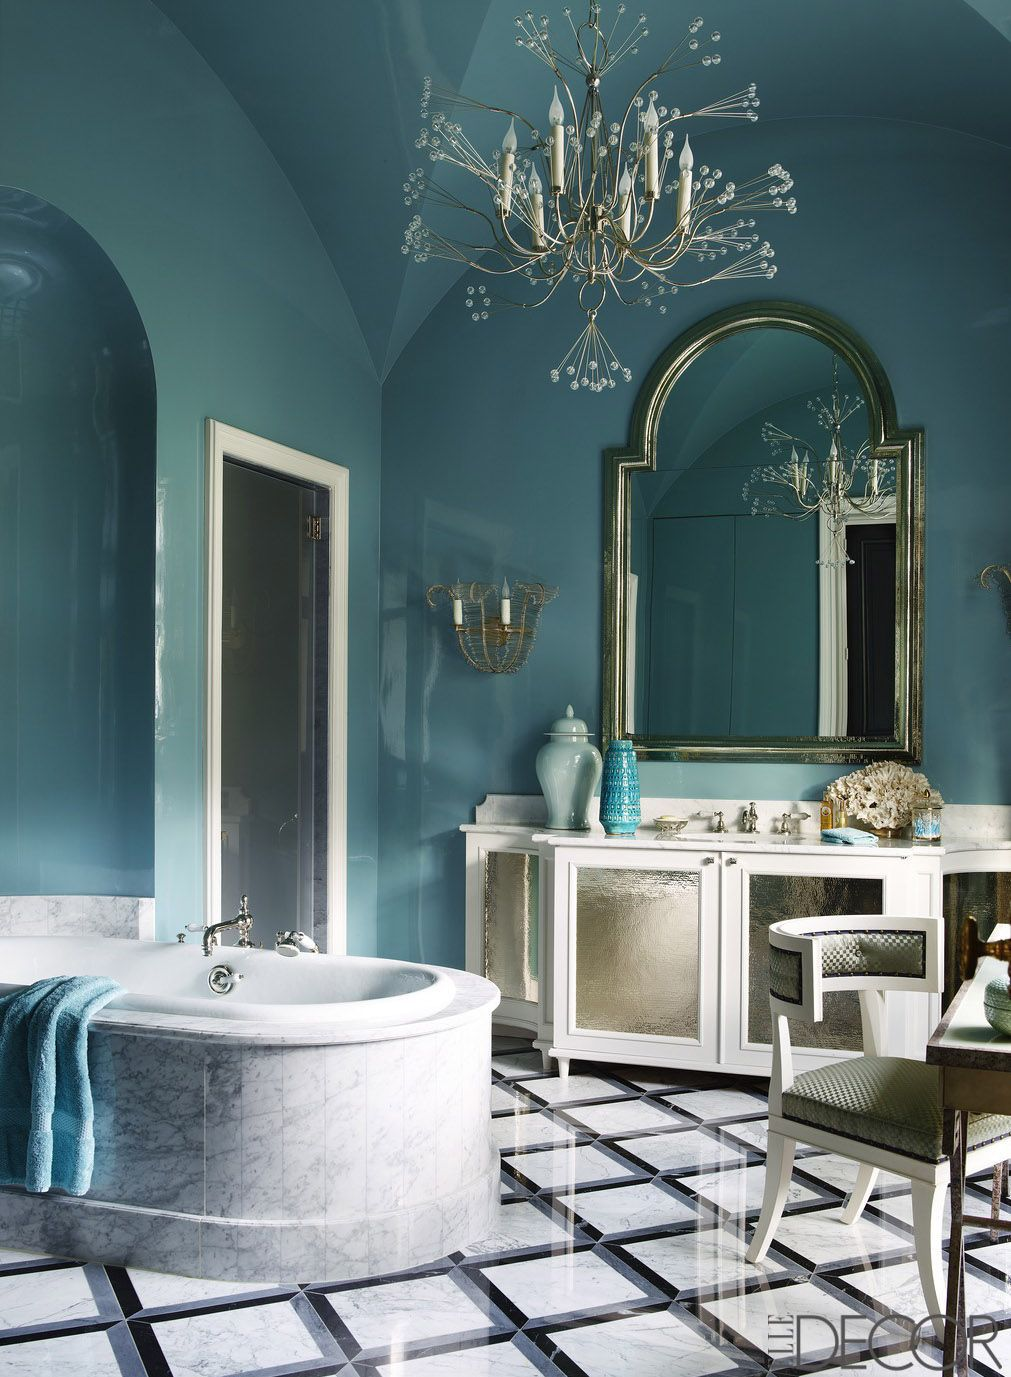 23 Best Bathroom Paint Colors - Top Designers' Ideal Wall Paint Hues